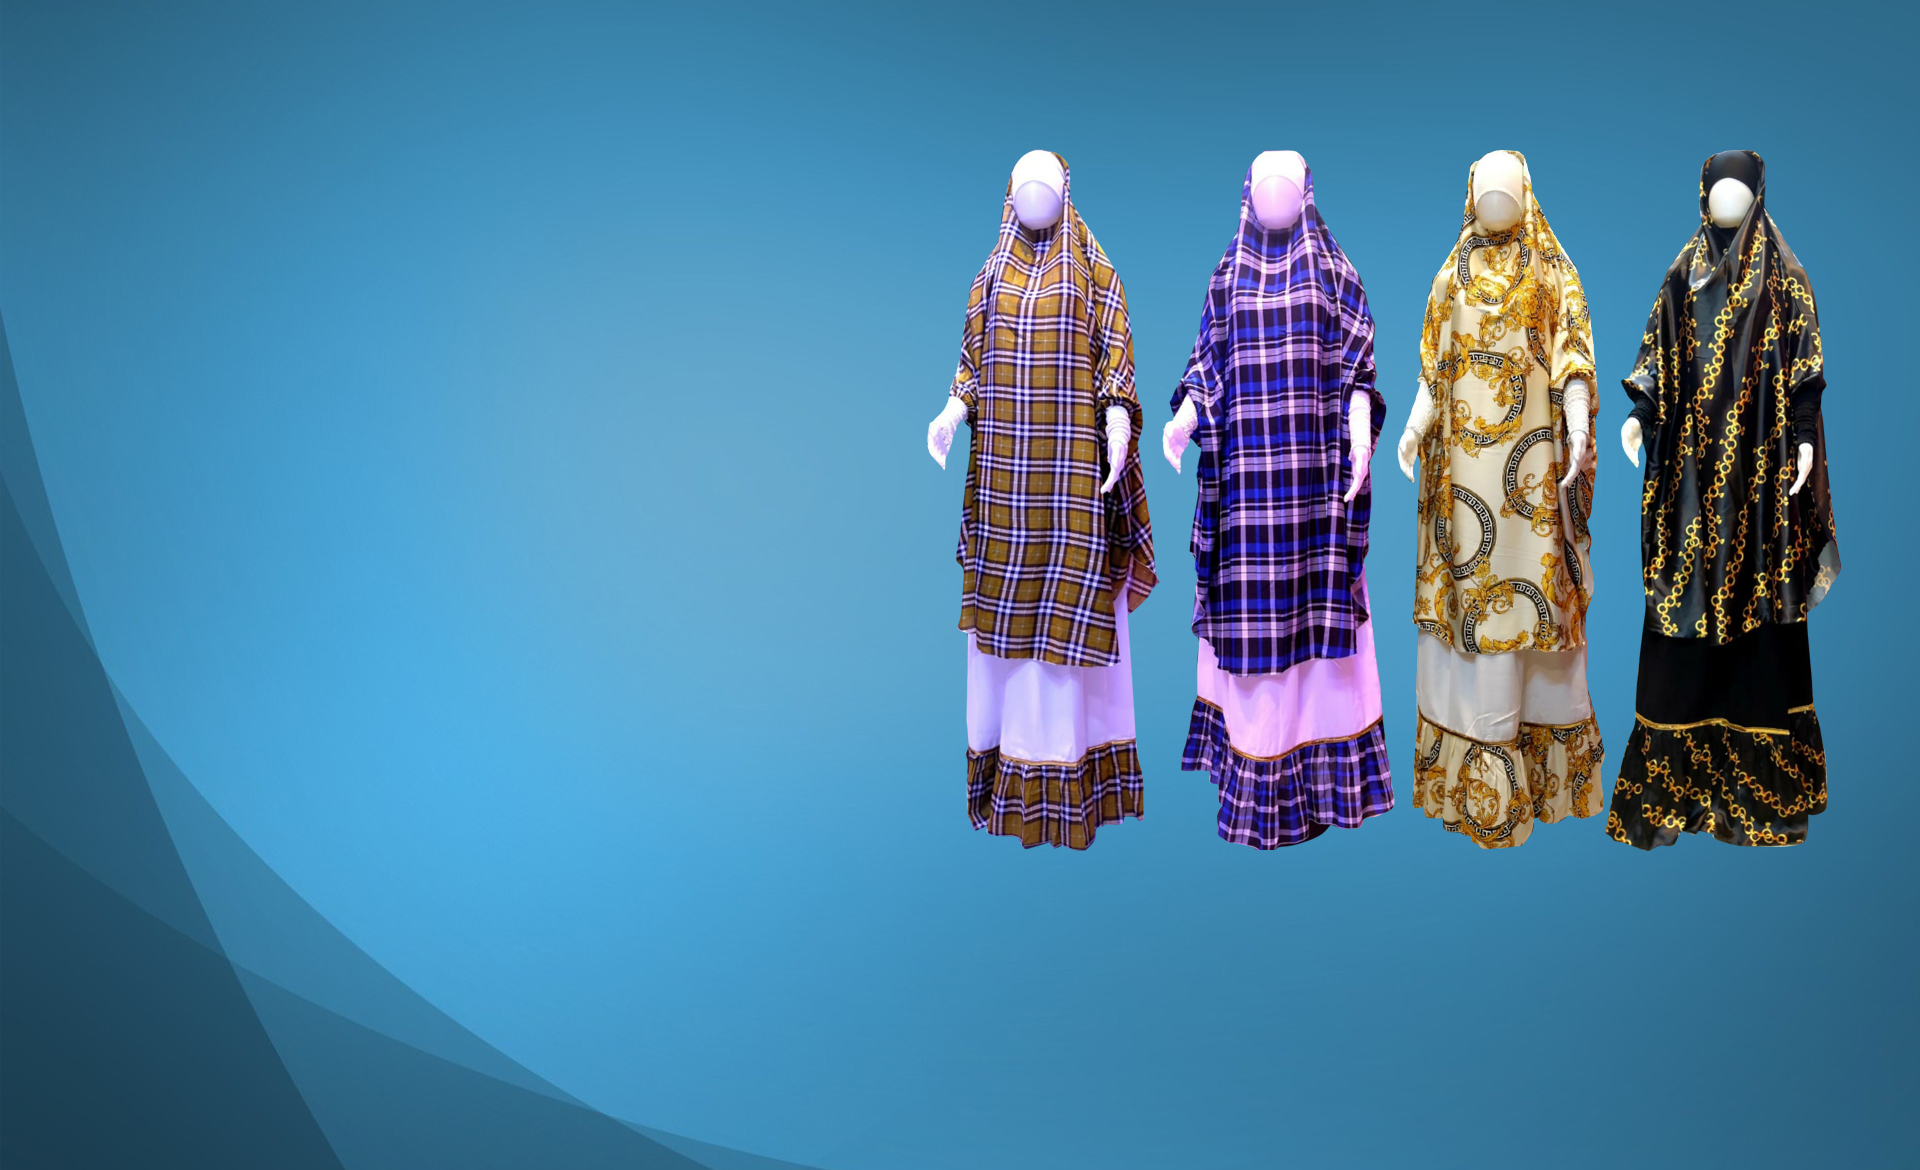 ~ Prayer Outfits ~